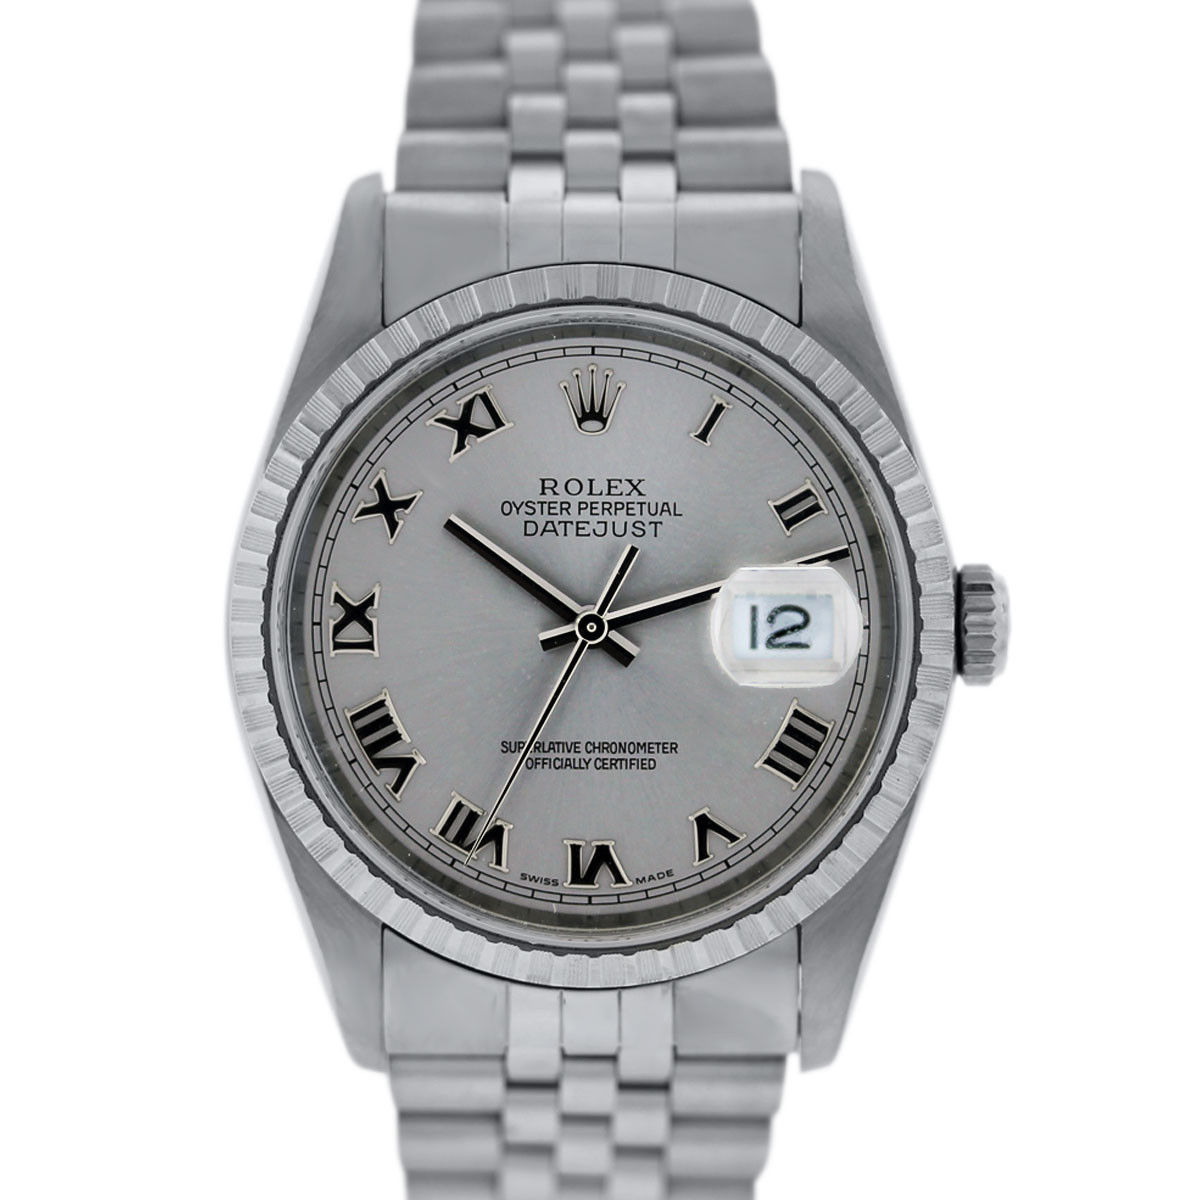 You are viewing this Rolex Datejust 16220 Roman Numeral Rhodium Dial Watch!